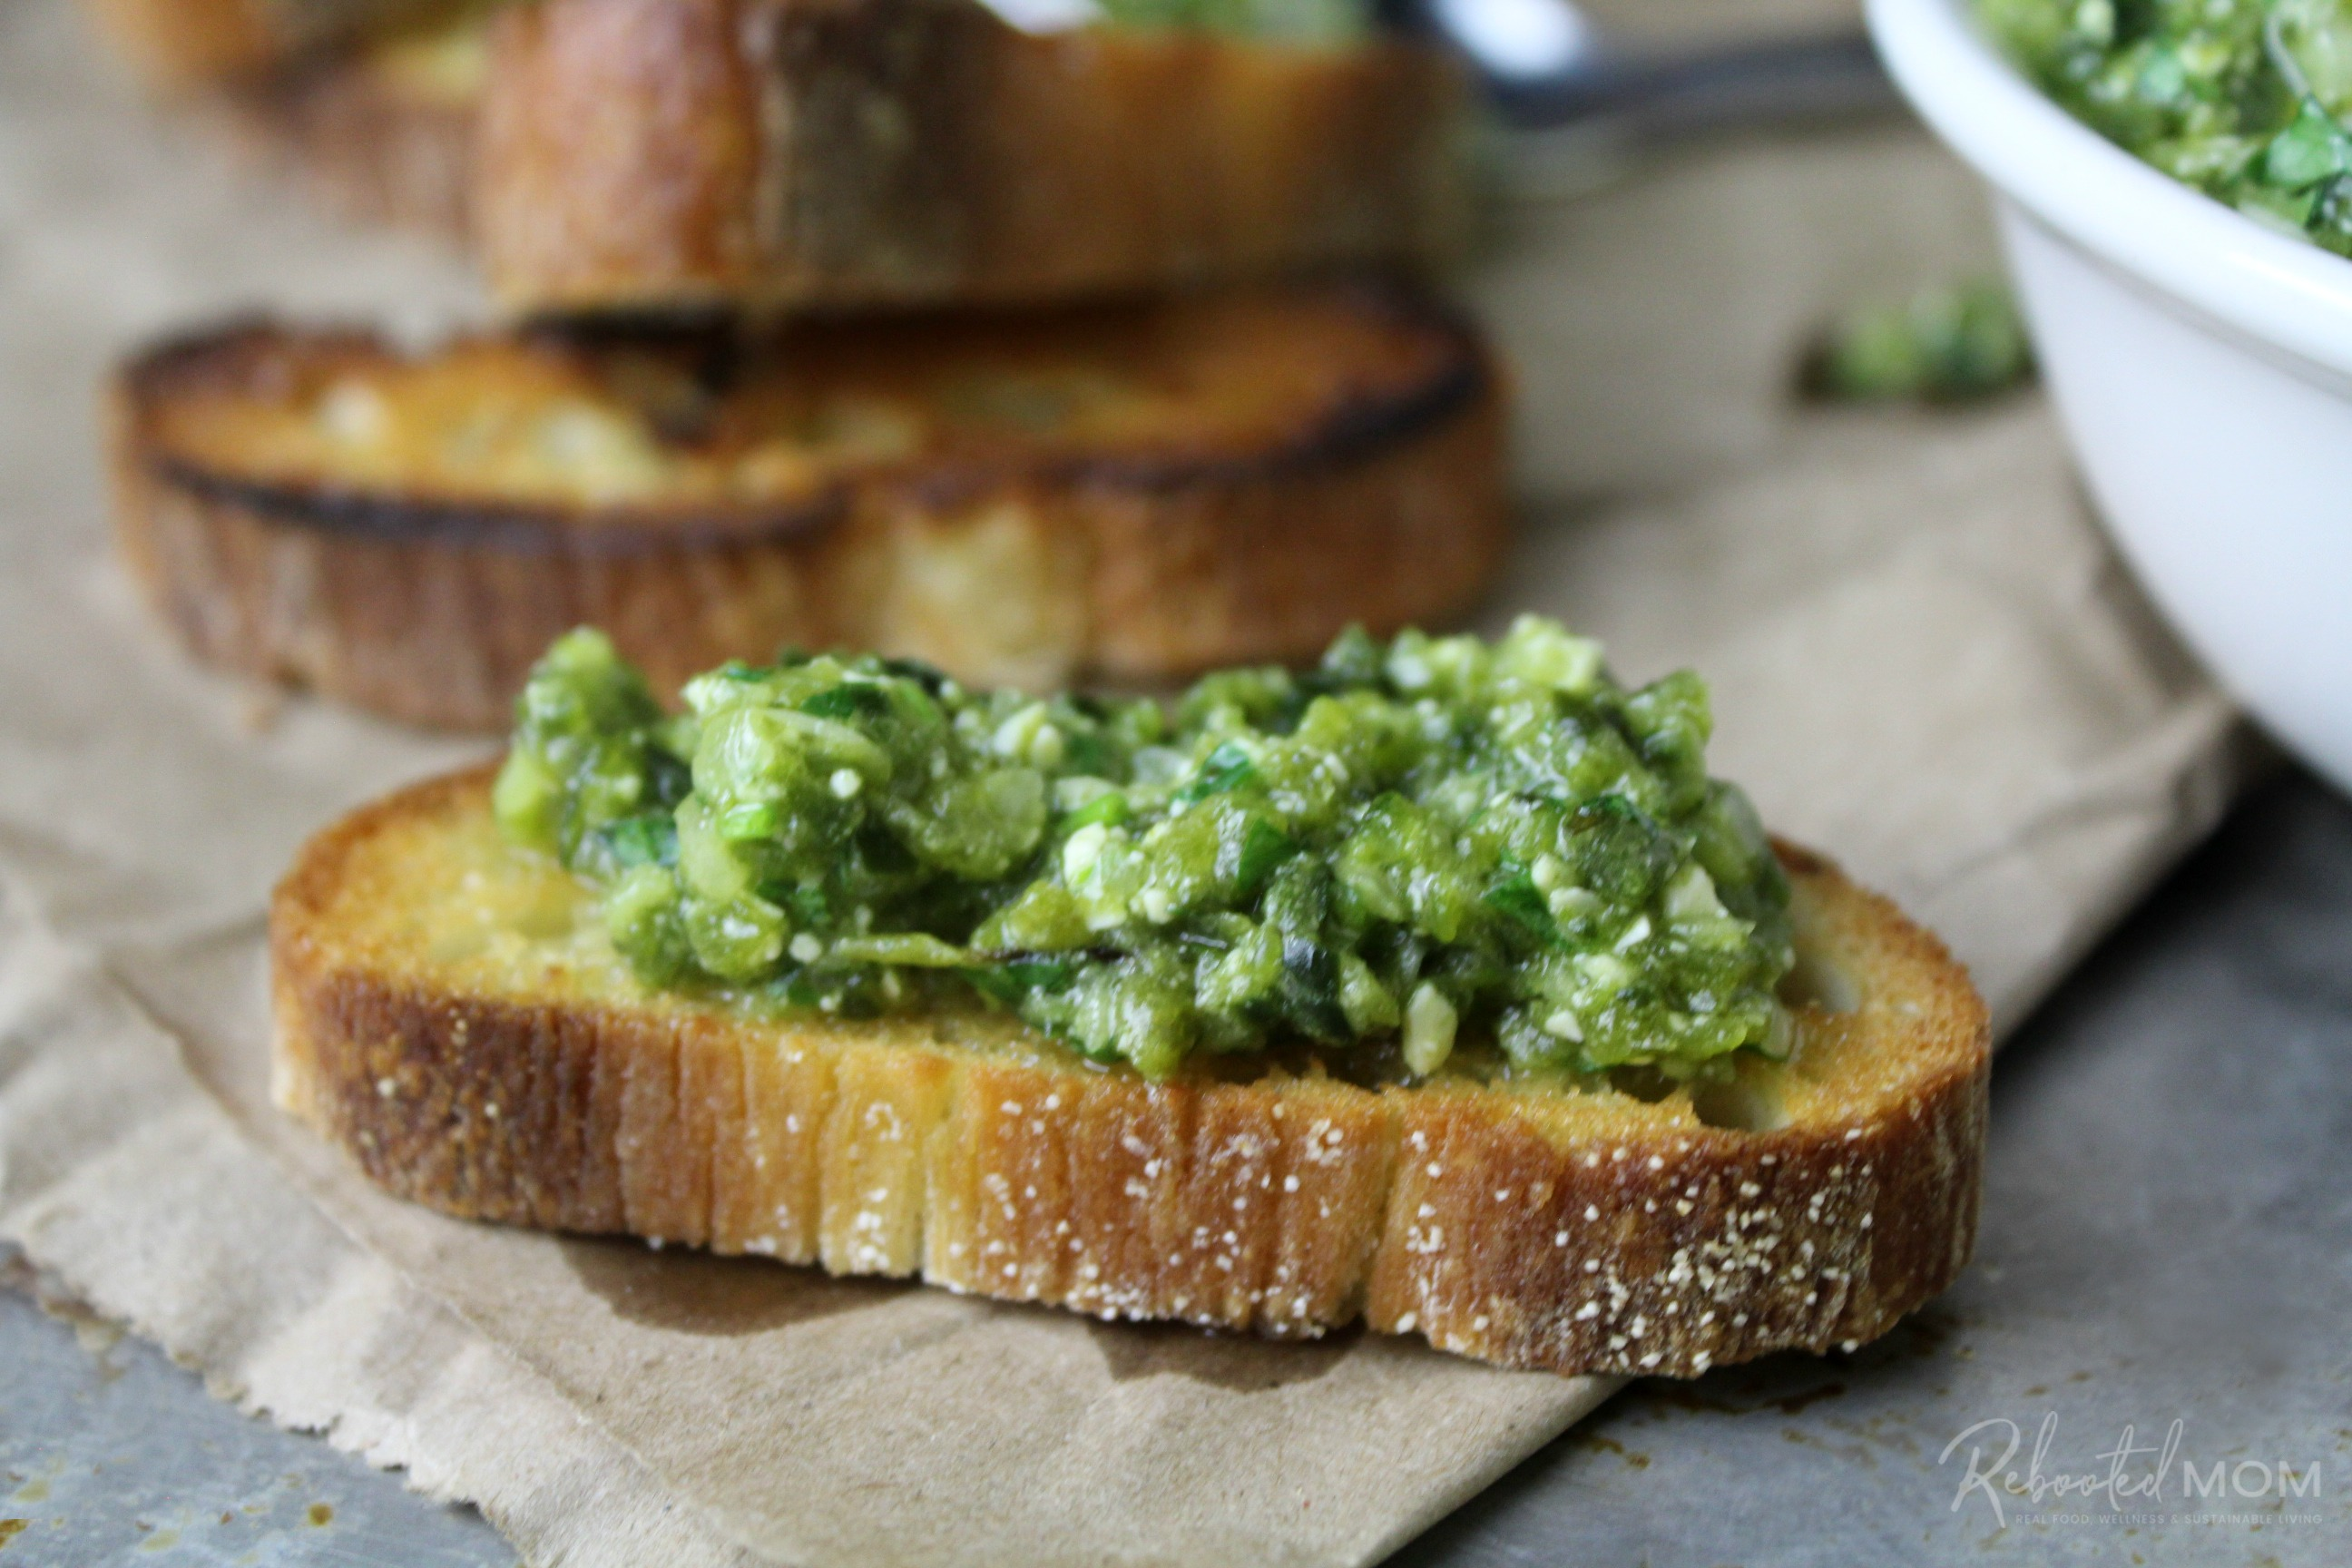 Roasted Poblano and Garlic Pesto on a Toasted Baguette